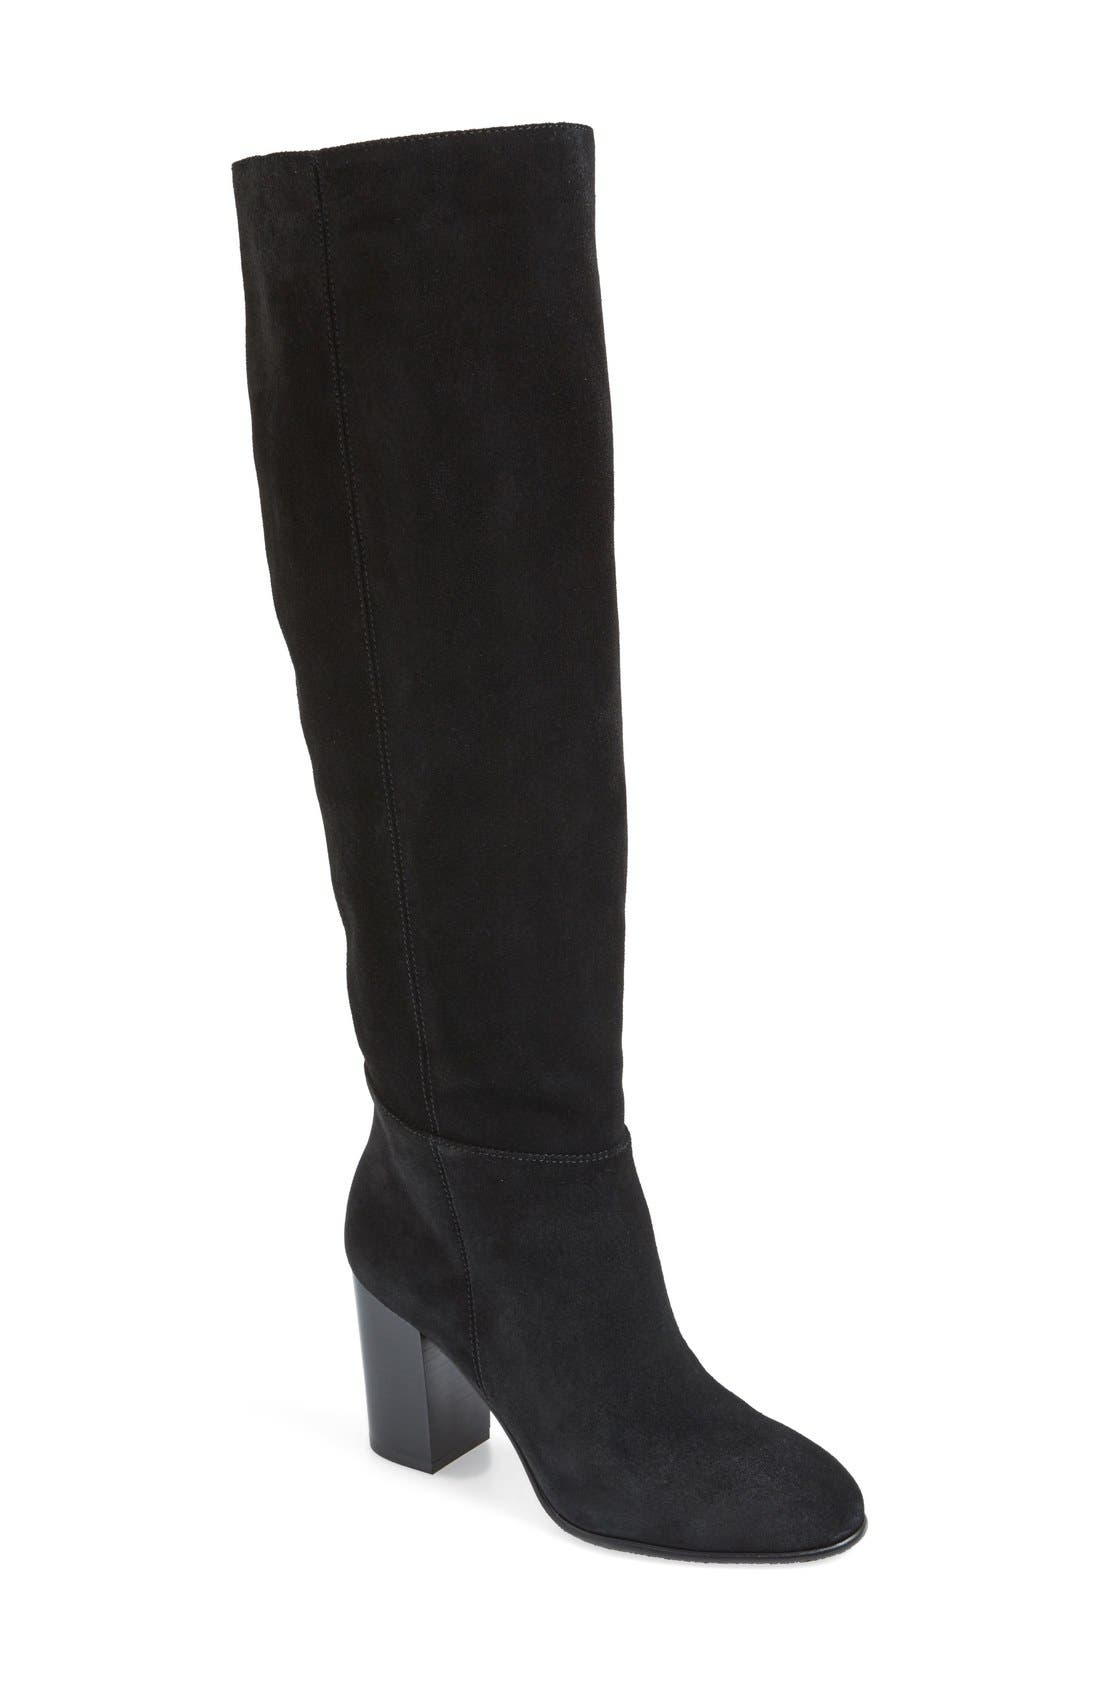 Alternate Image 1 Selected - Sam Edelman 'Silas' Knee High Boot (Women)